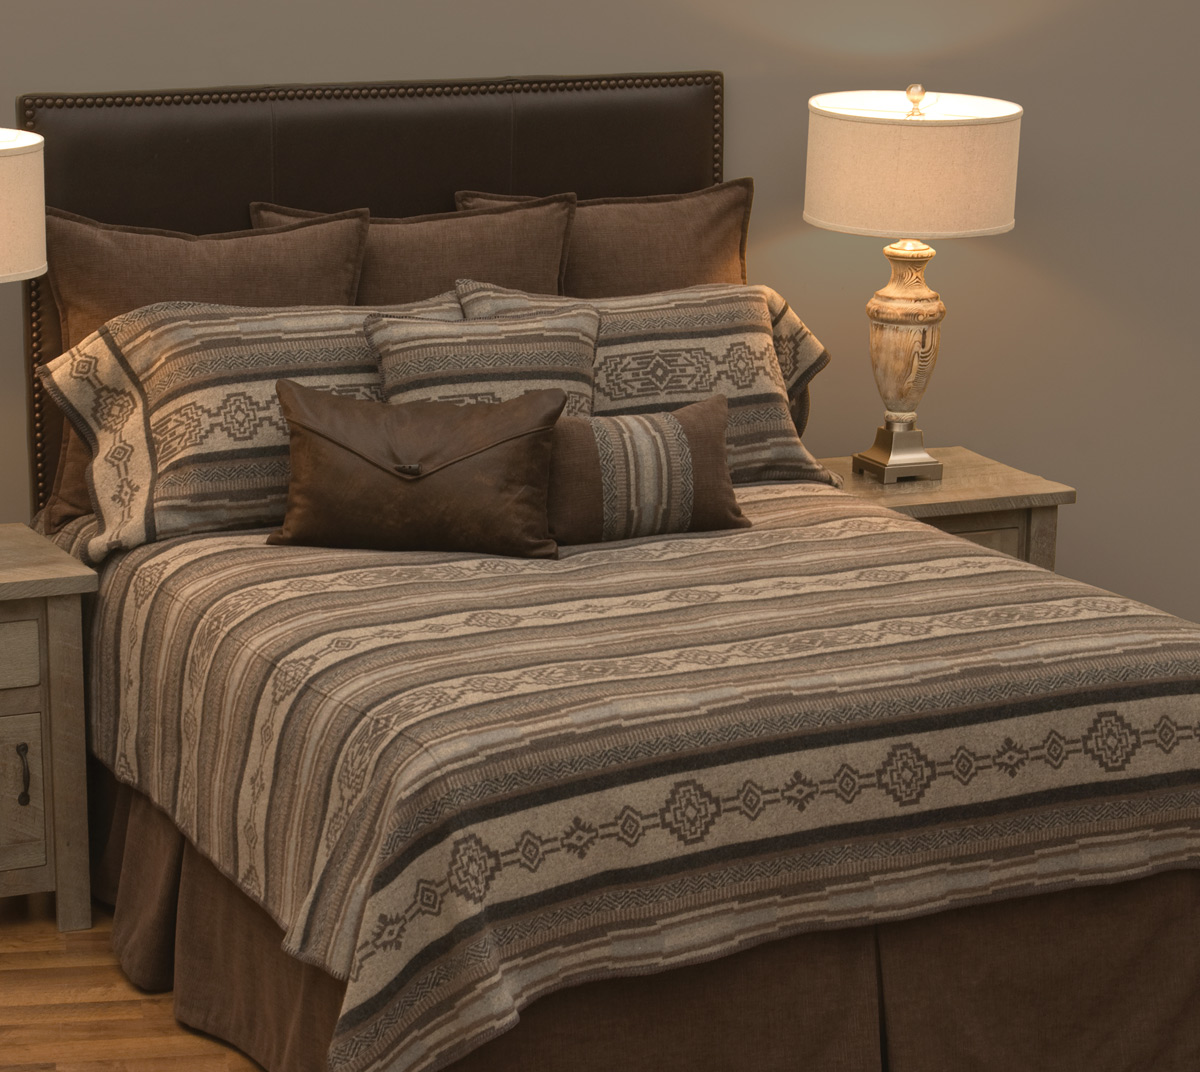 Black Forest Decor Lodge lux bedspread - cal king